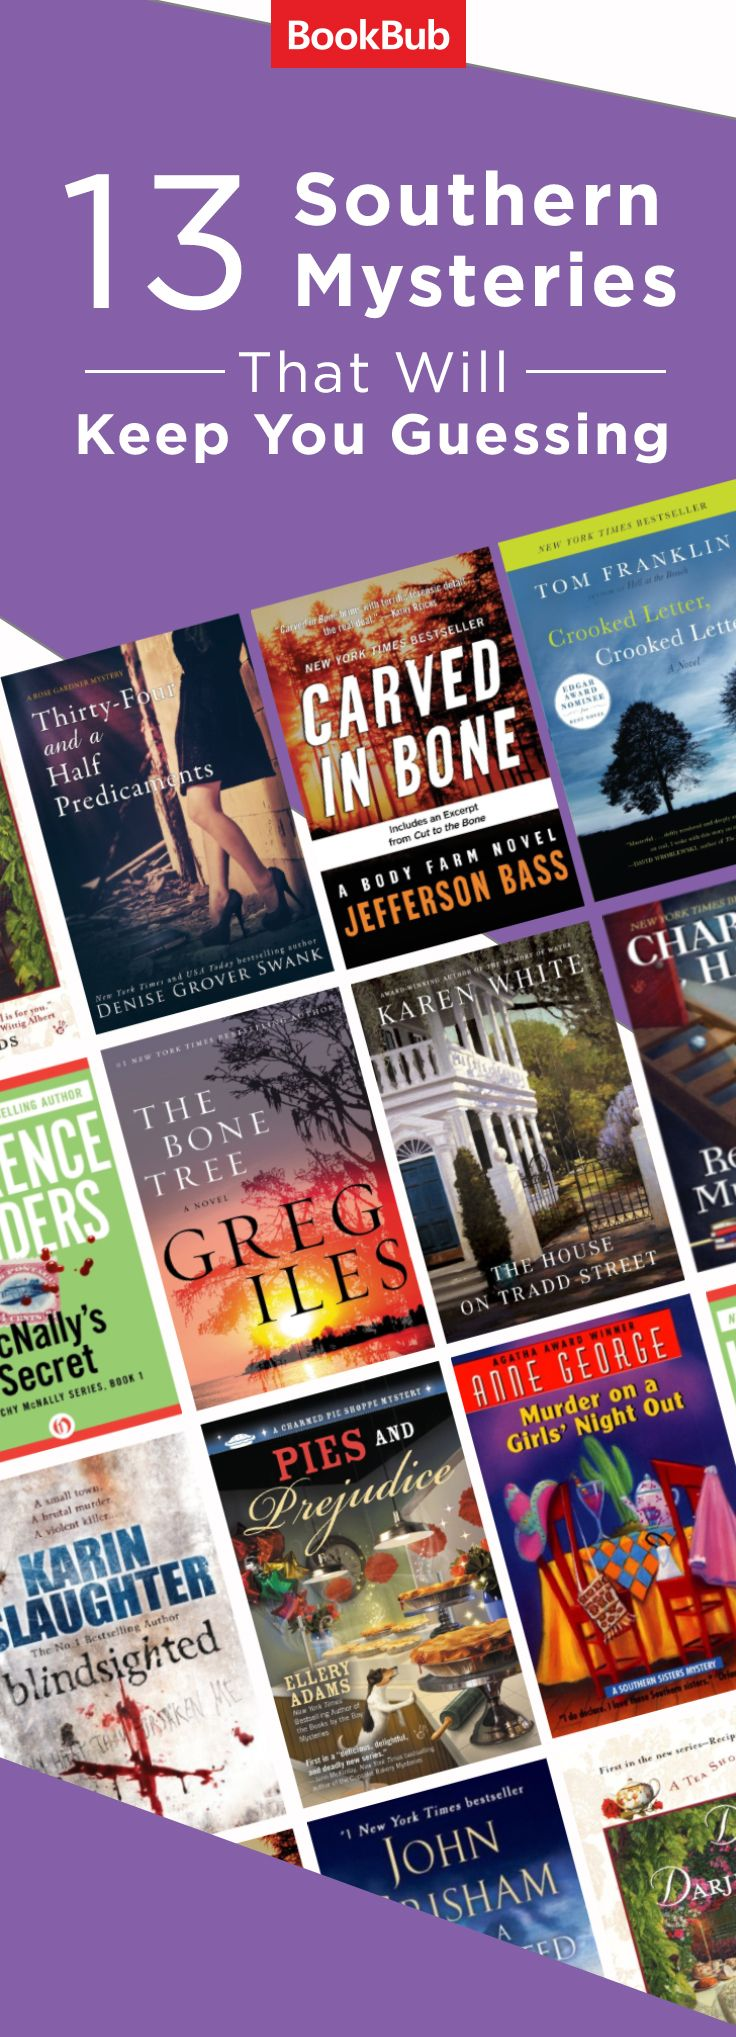 These mystery books are worth reading if you love novels set in the south